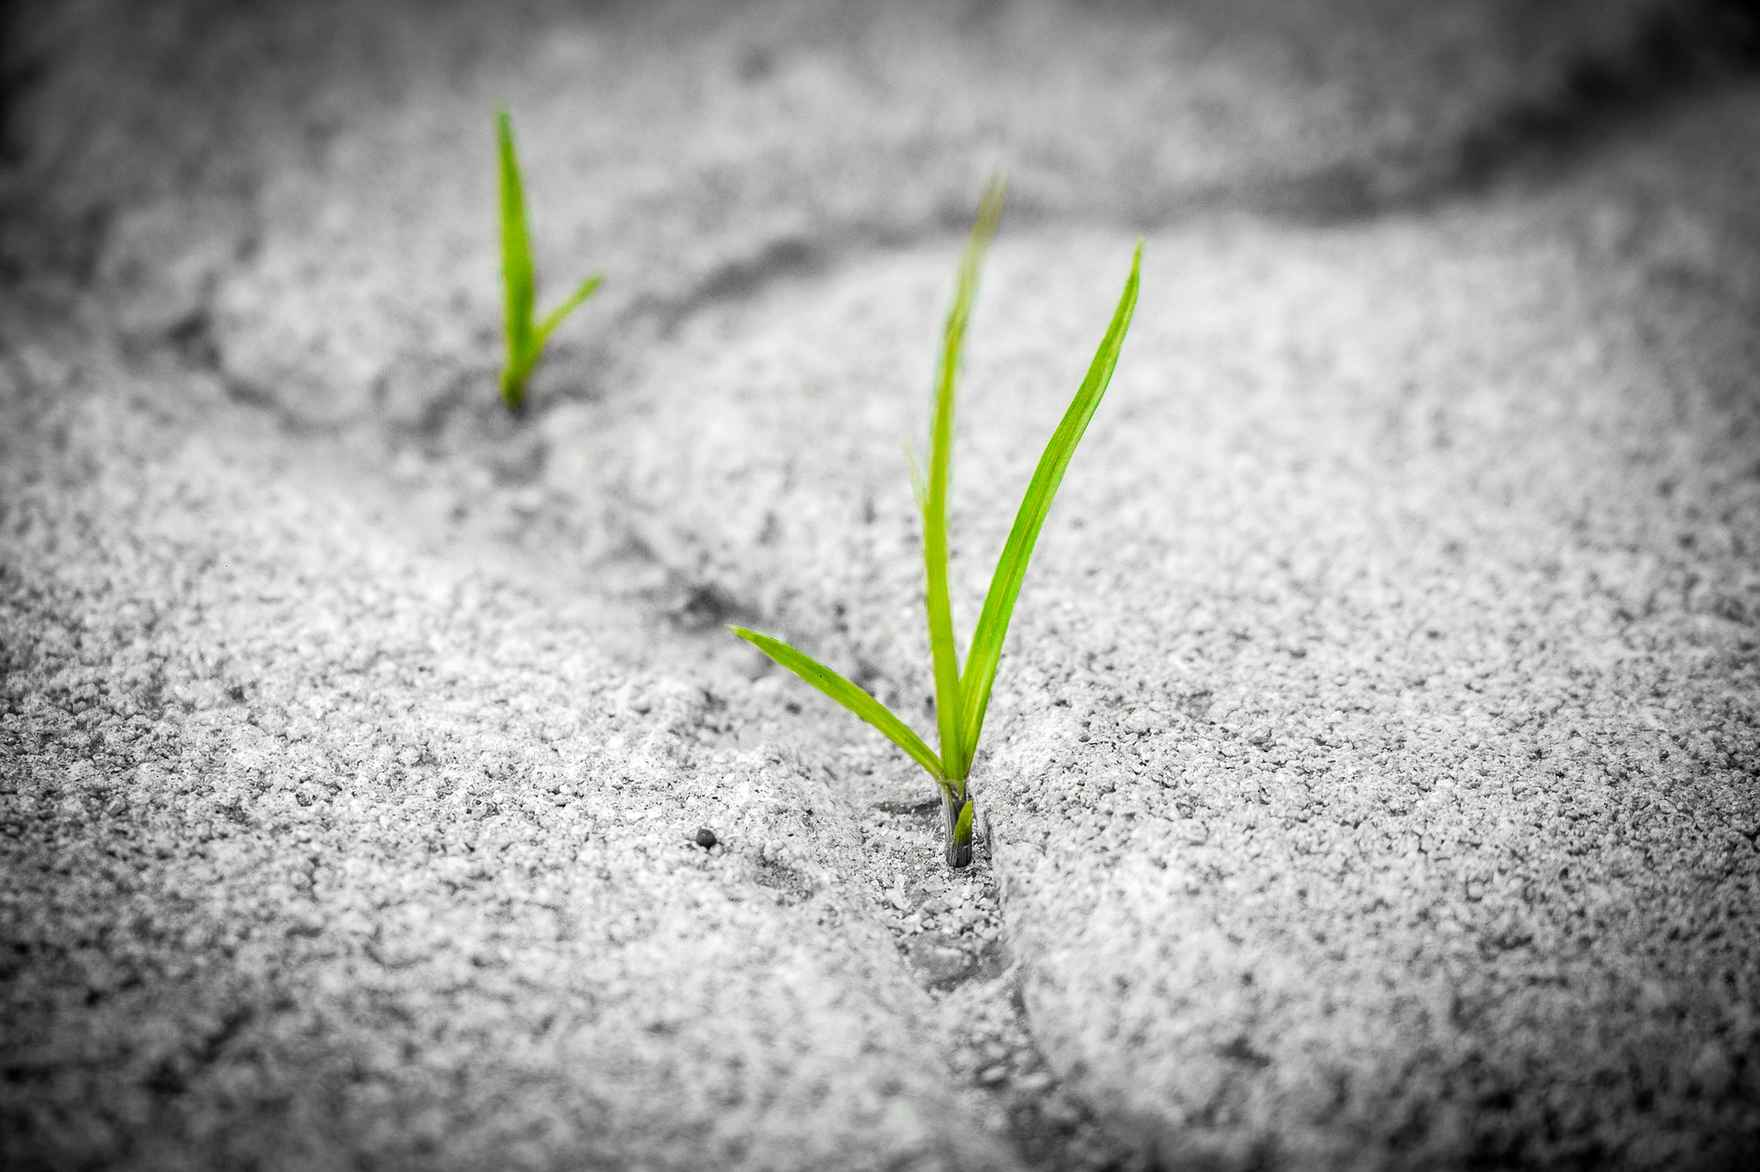 grass-sprout-between-stones